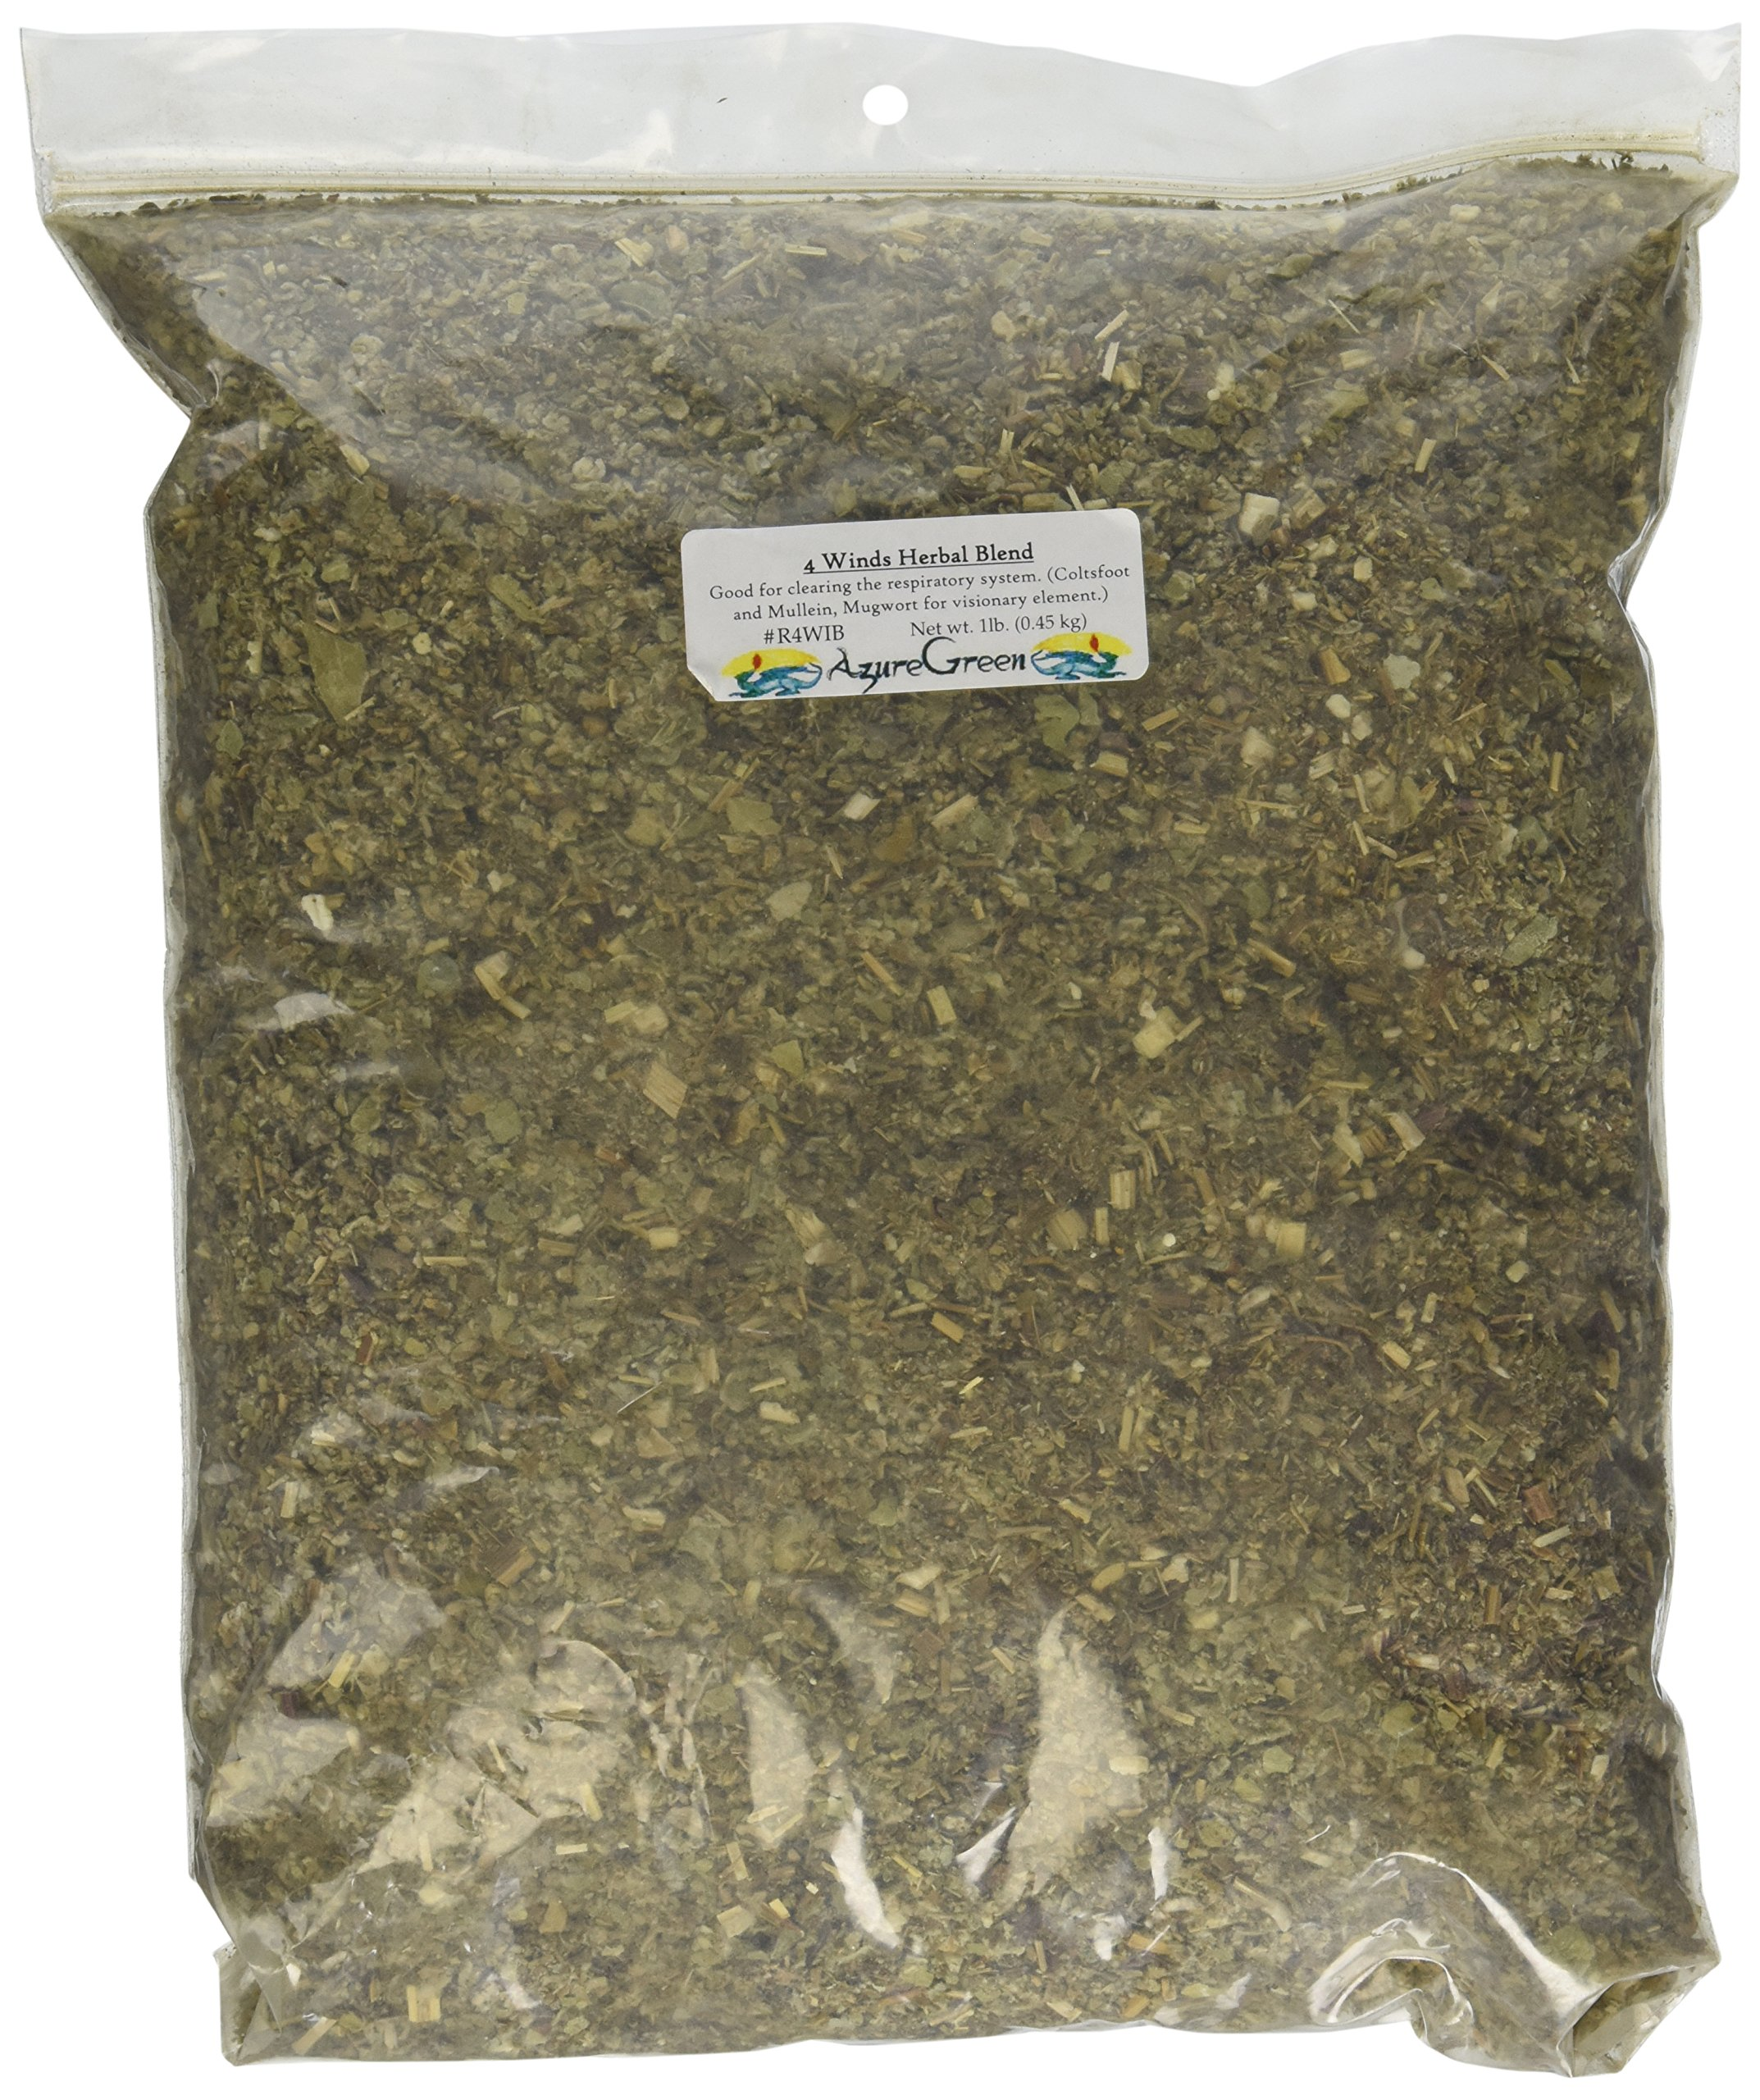 4 Winds Herbal Blend